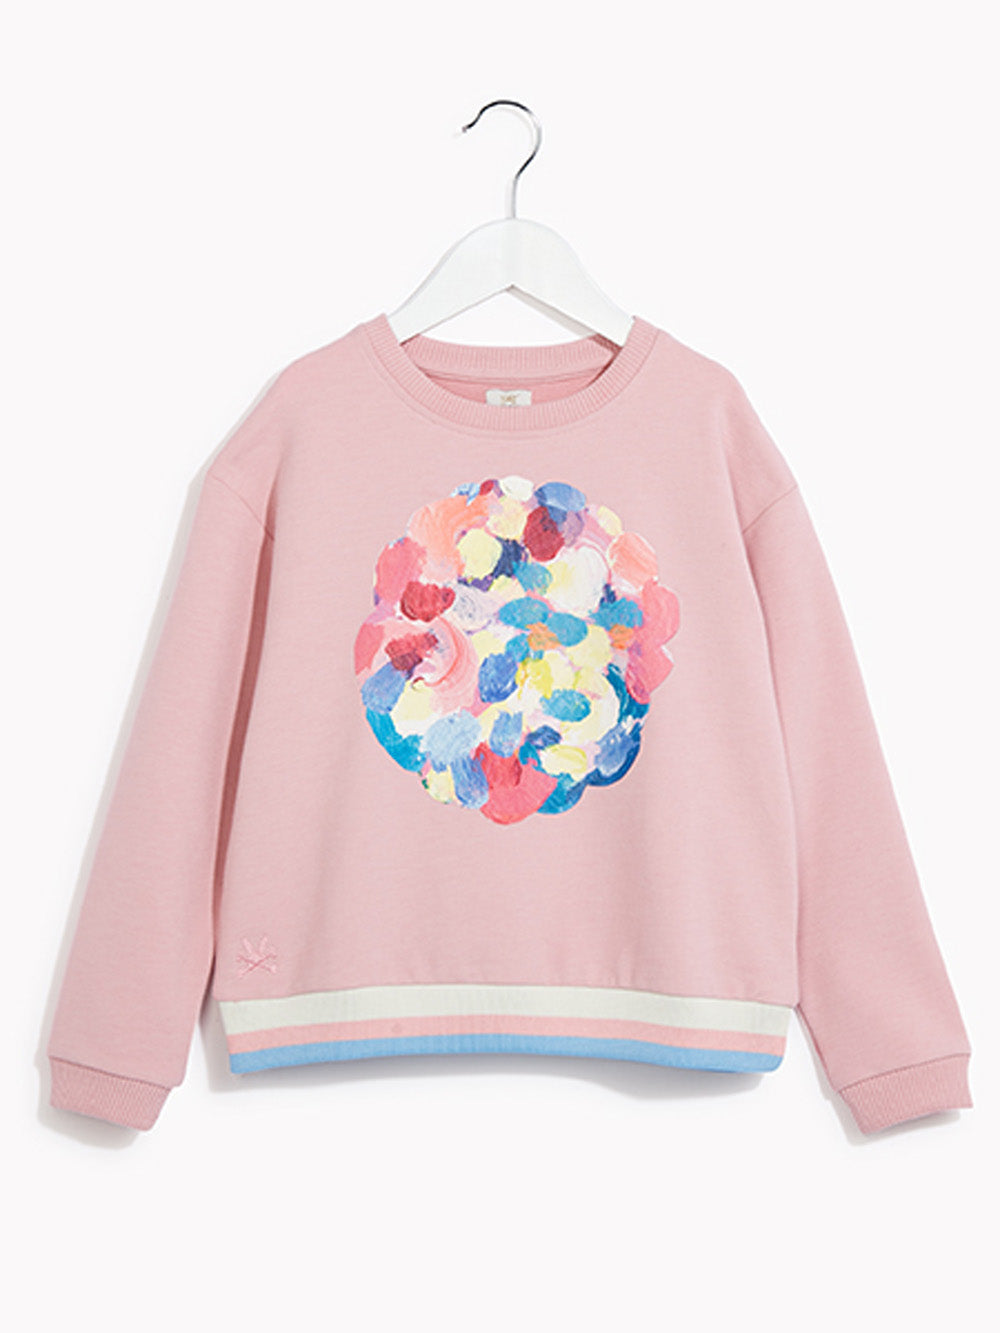 Girls Pretty Pink Sweater Top - Kids Long Sleeved Jumper Vote Haute Rose Quartz Marl Sweat Top